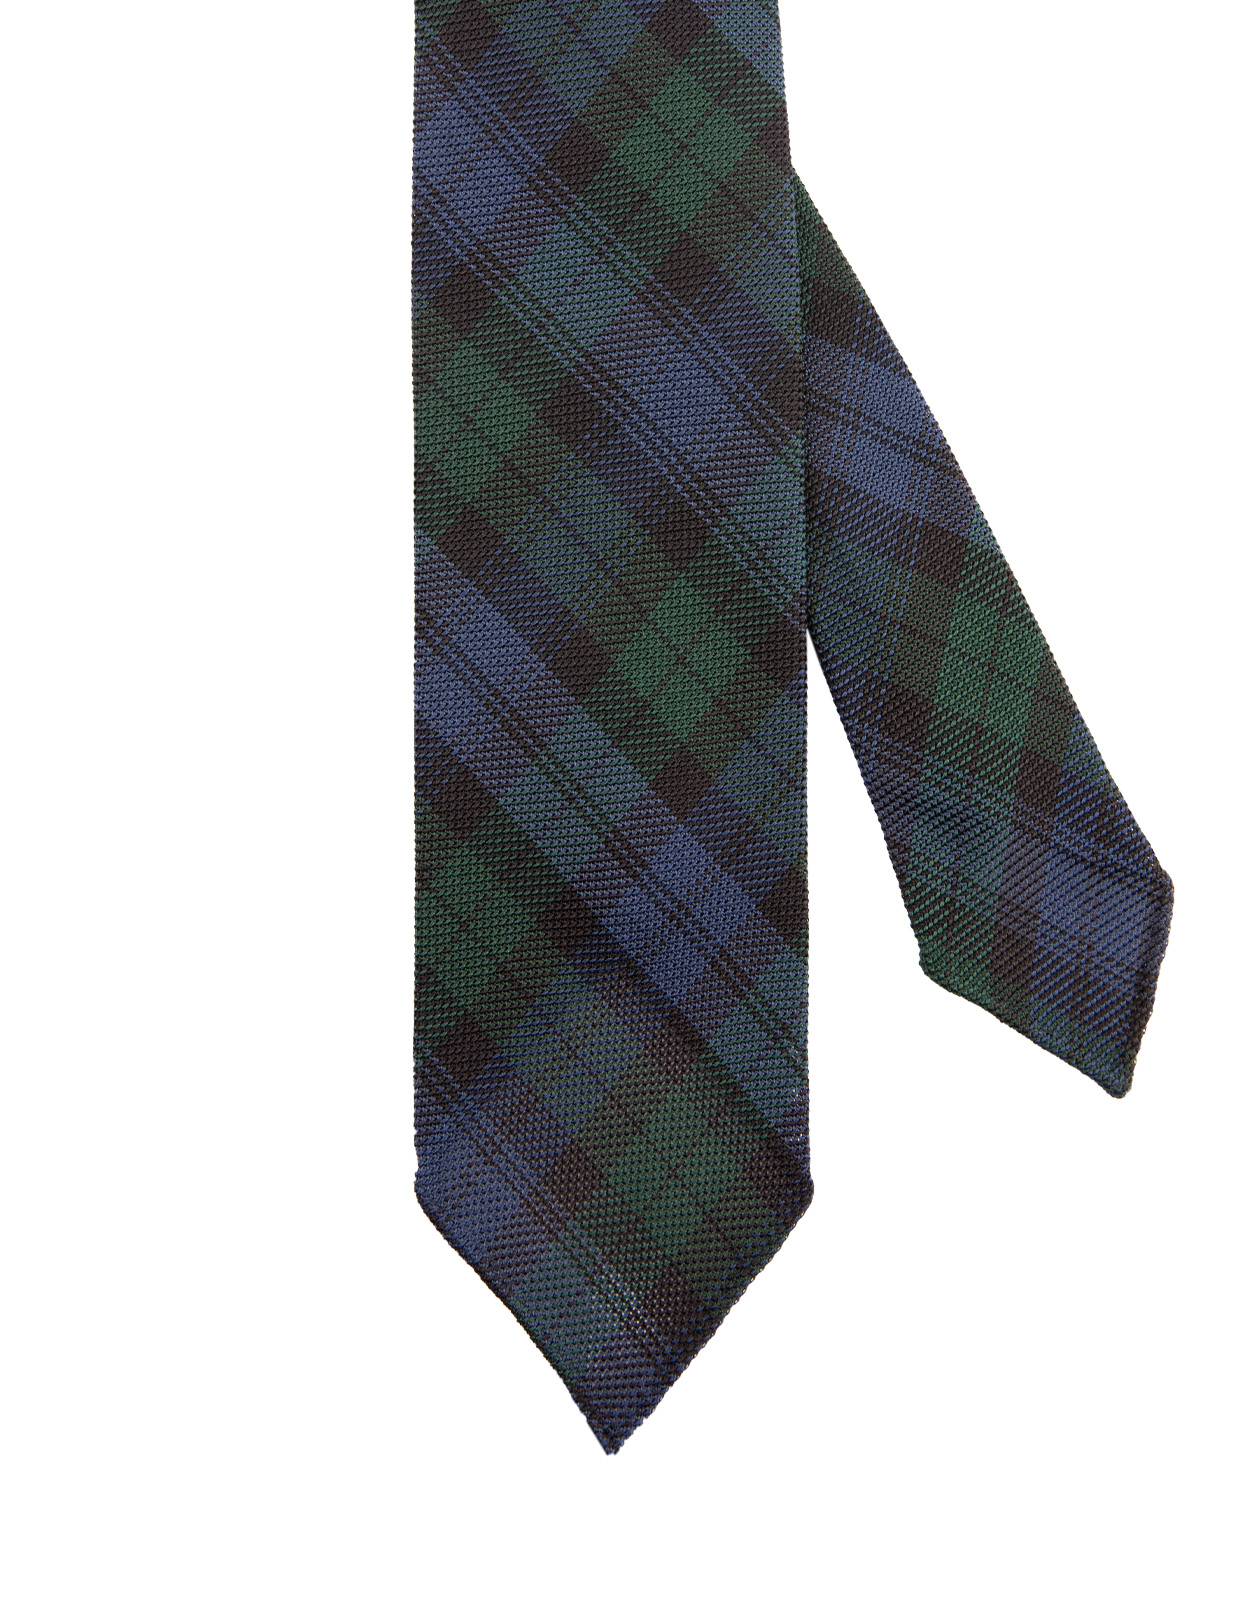 Tartan Handrolled Fine Woven Grenadine Tie Blackwatch